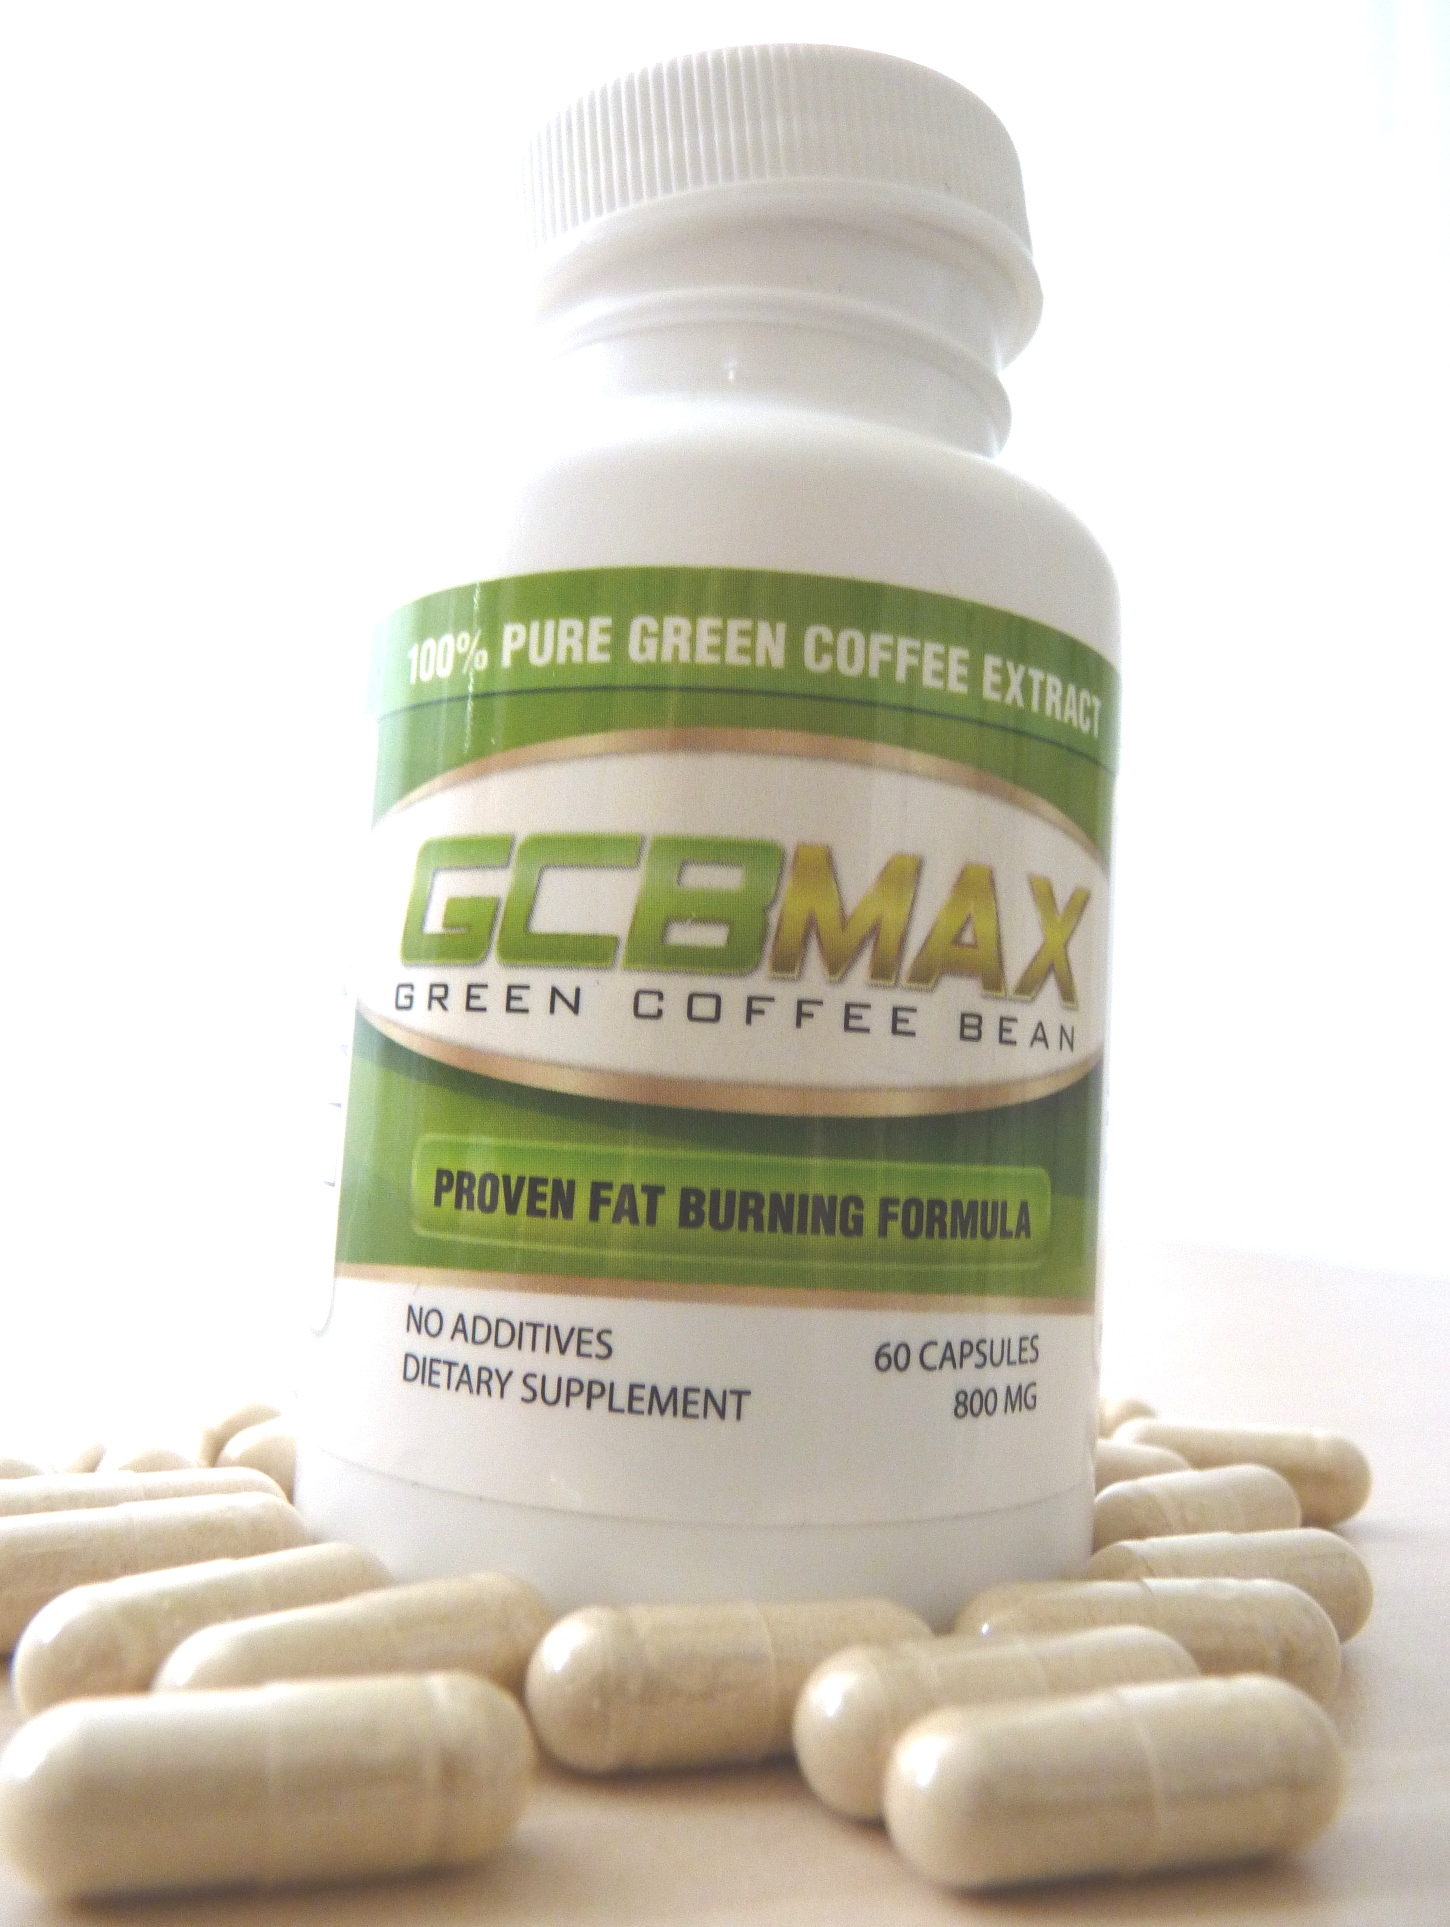 Acquista il Green Coffee Bean Max!